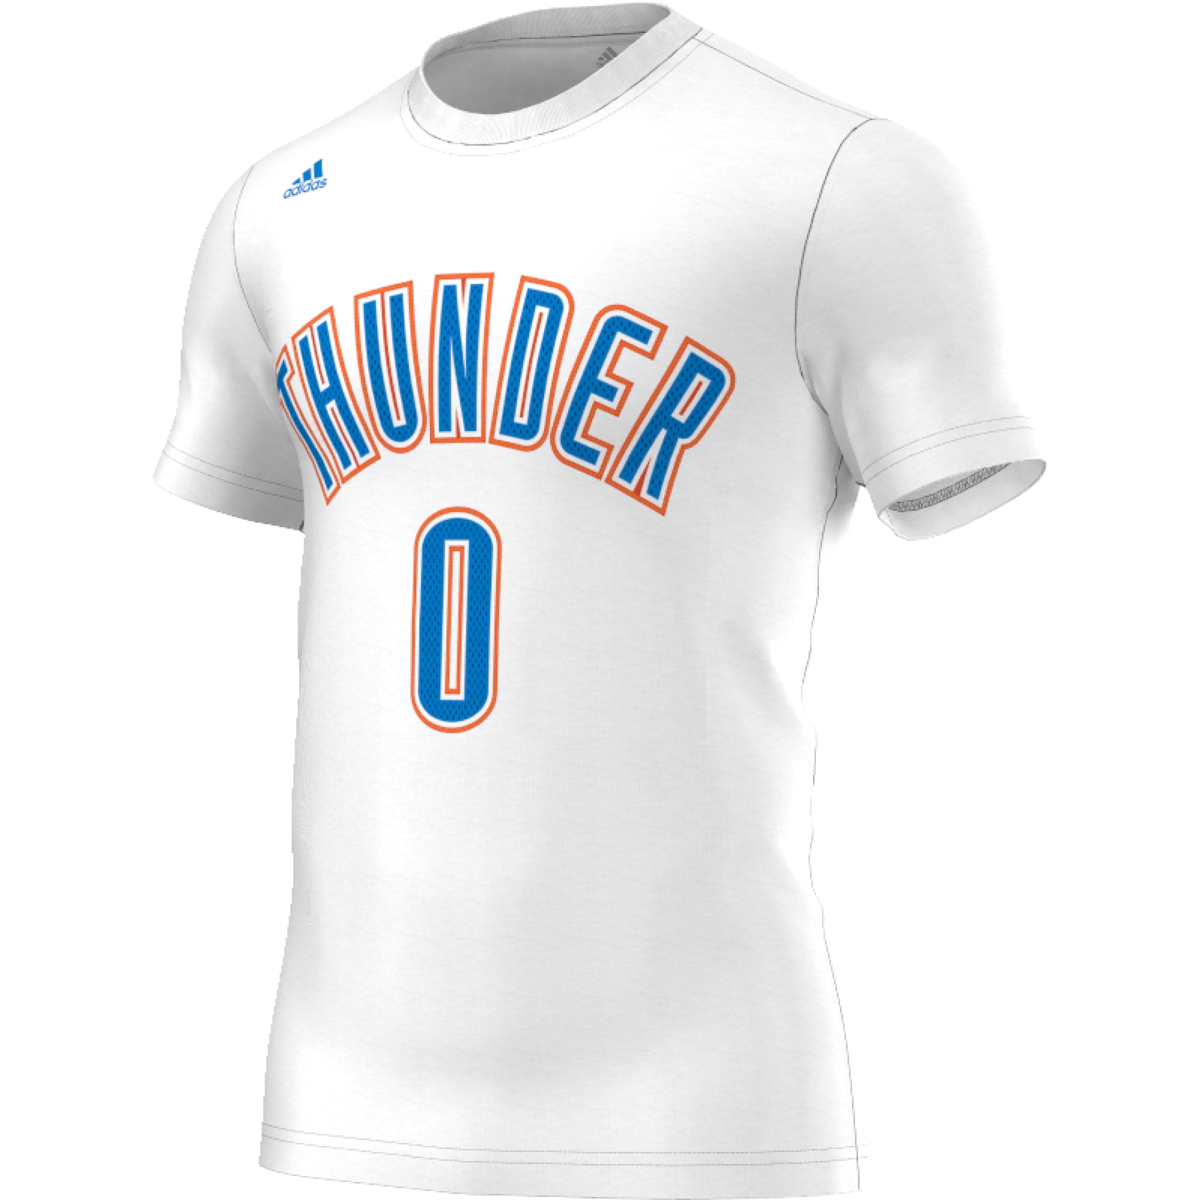 Adidas nba okc thunders 0 t shirt ap4181 basketball for T shirt printing okc